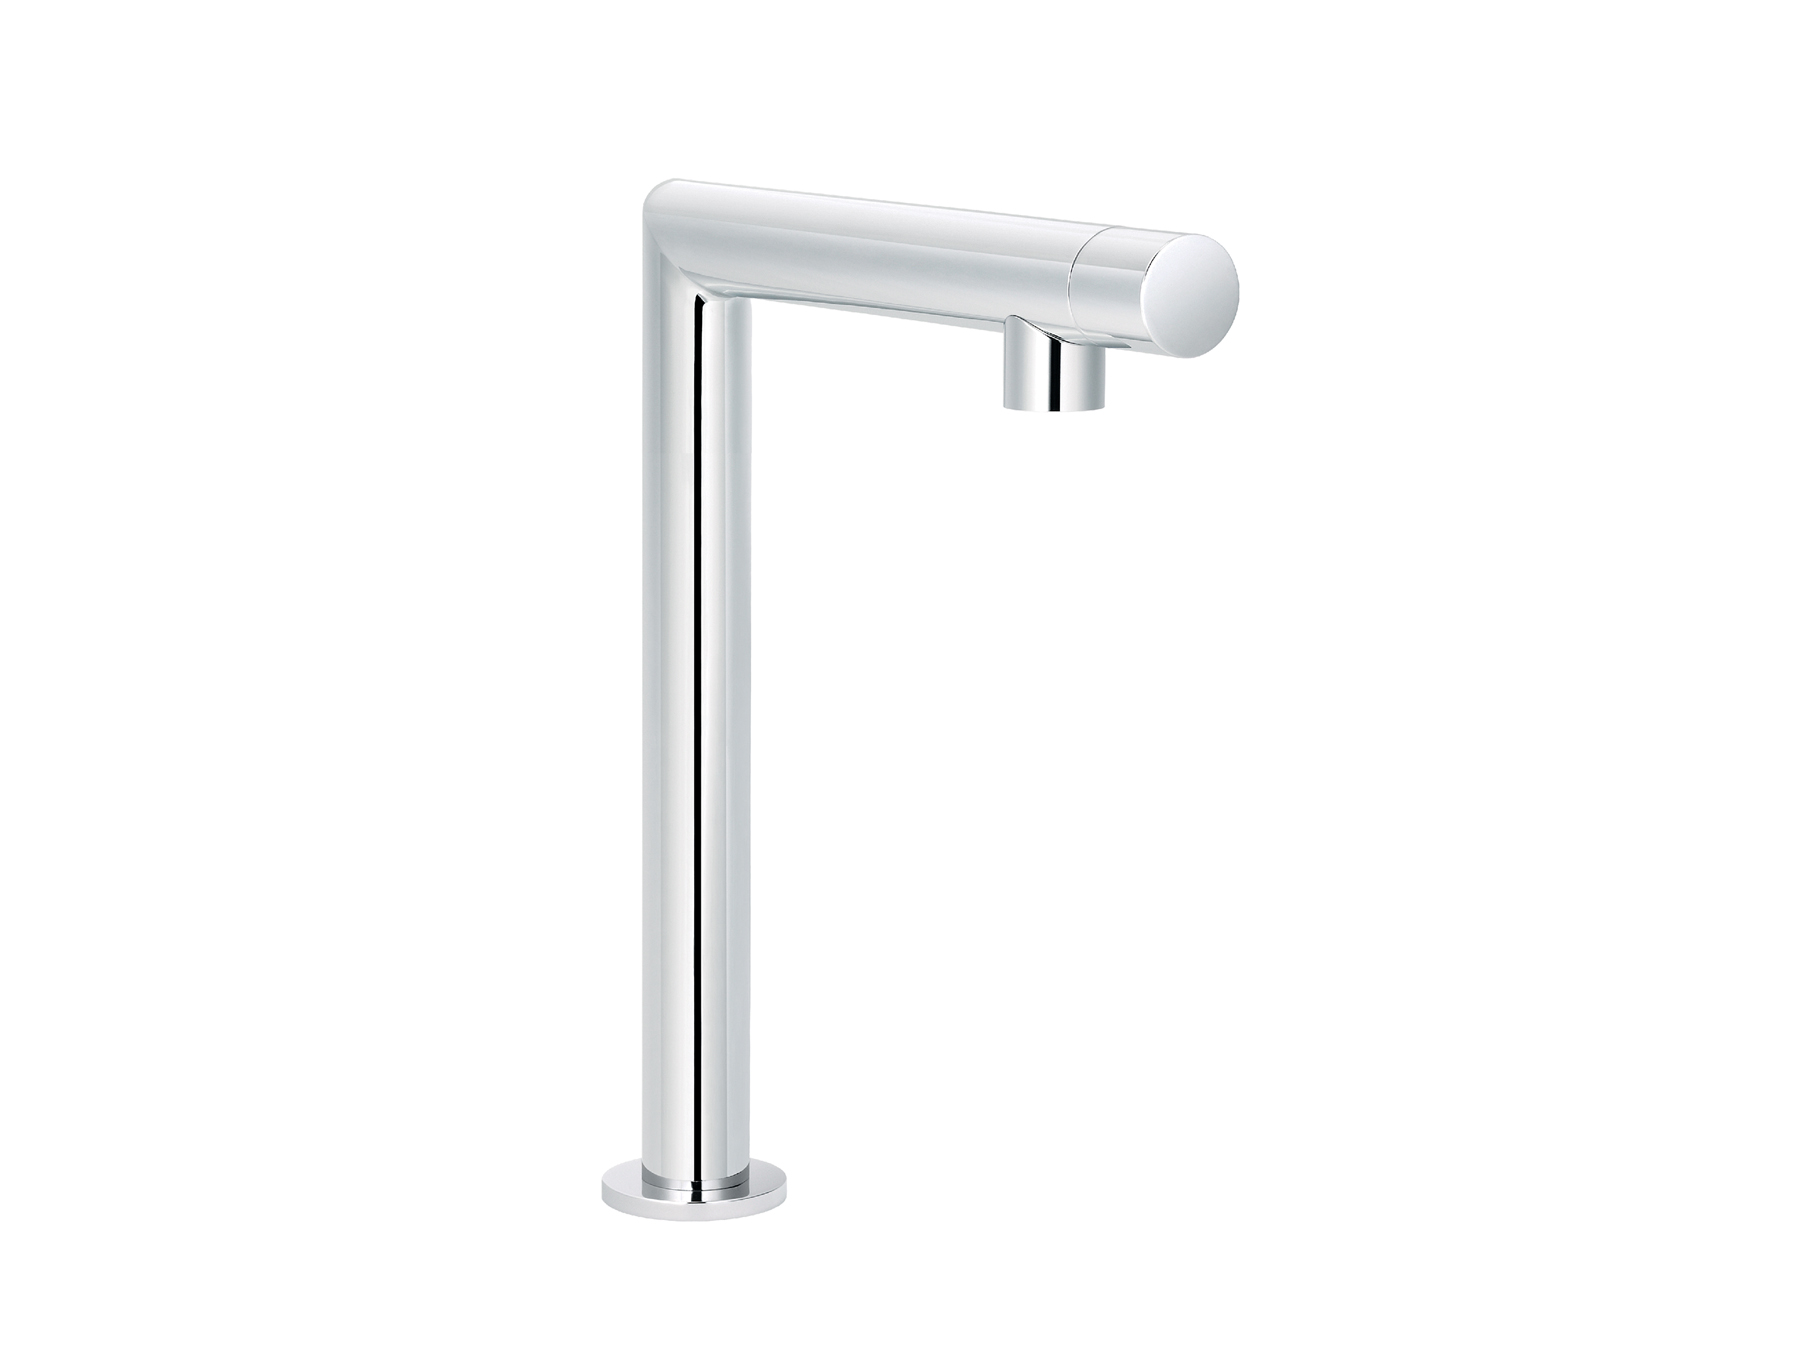 Washbasin tap, high model 4043.--.38